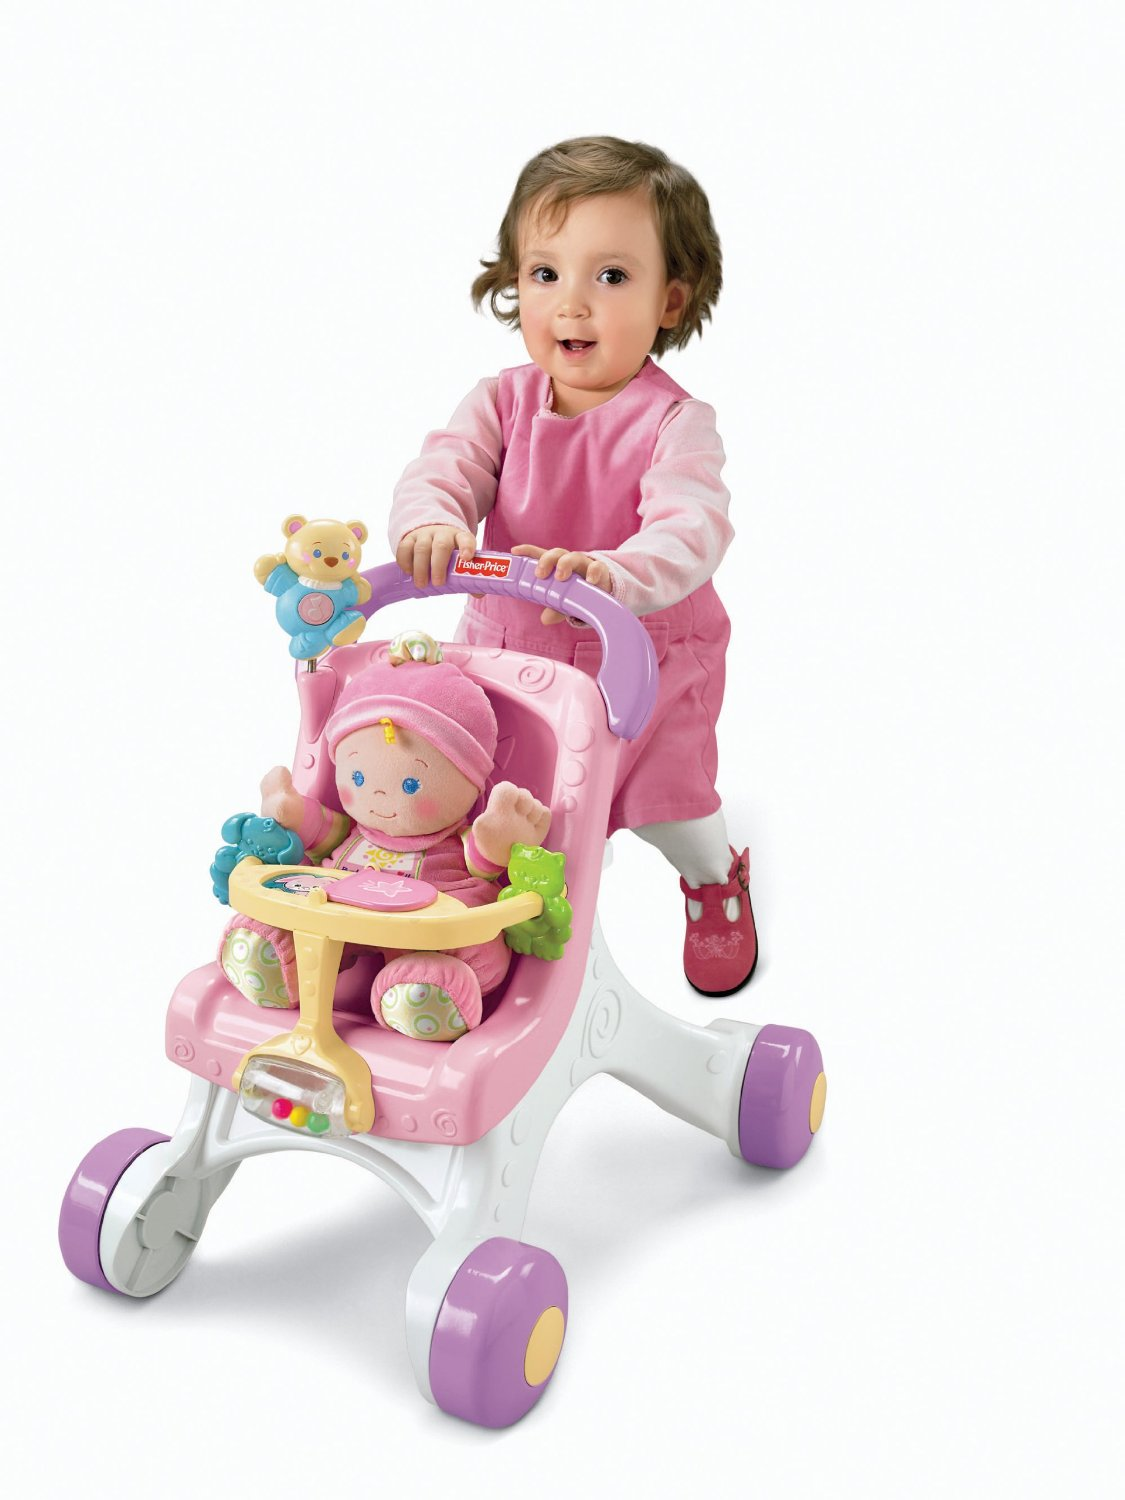 Juguetes Para Bebes De 6 Meses 12 Meses De Fisher Price together with Chicco Tre Performance Jogging Stroller Surge besides Automatic Baby Bouncer price furthermore Adventurer additionally Whats Going To Happen When Interest Rates Go Up. on 6 months high chair